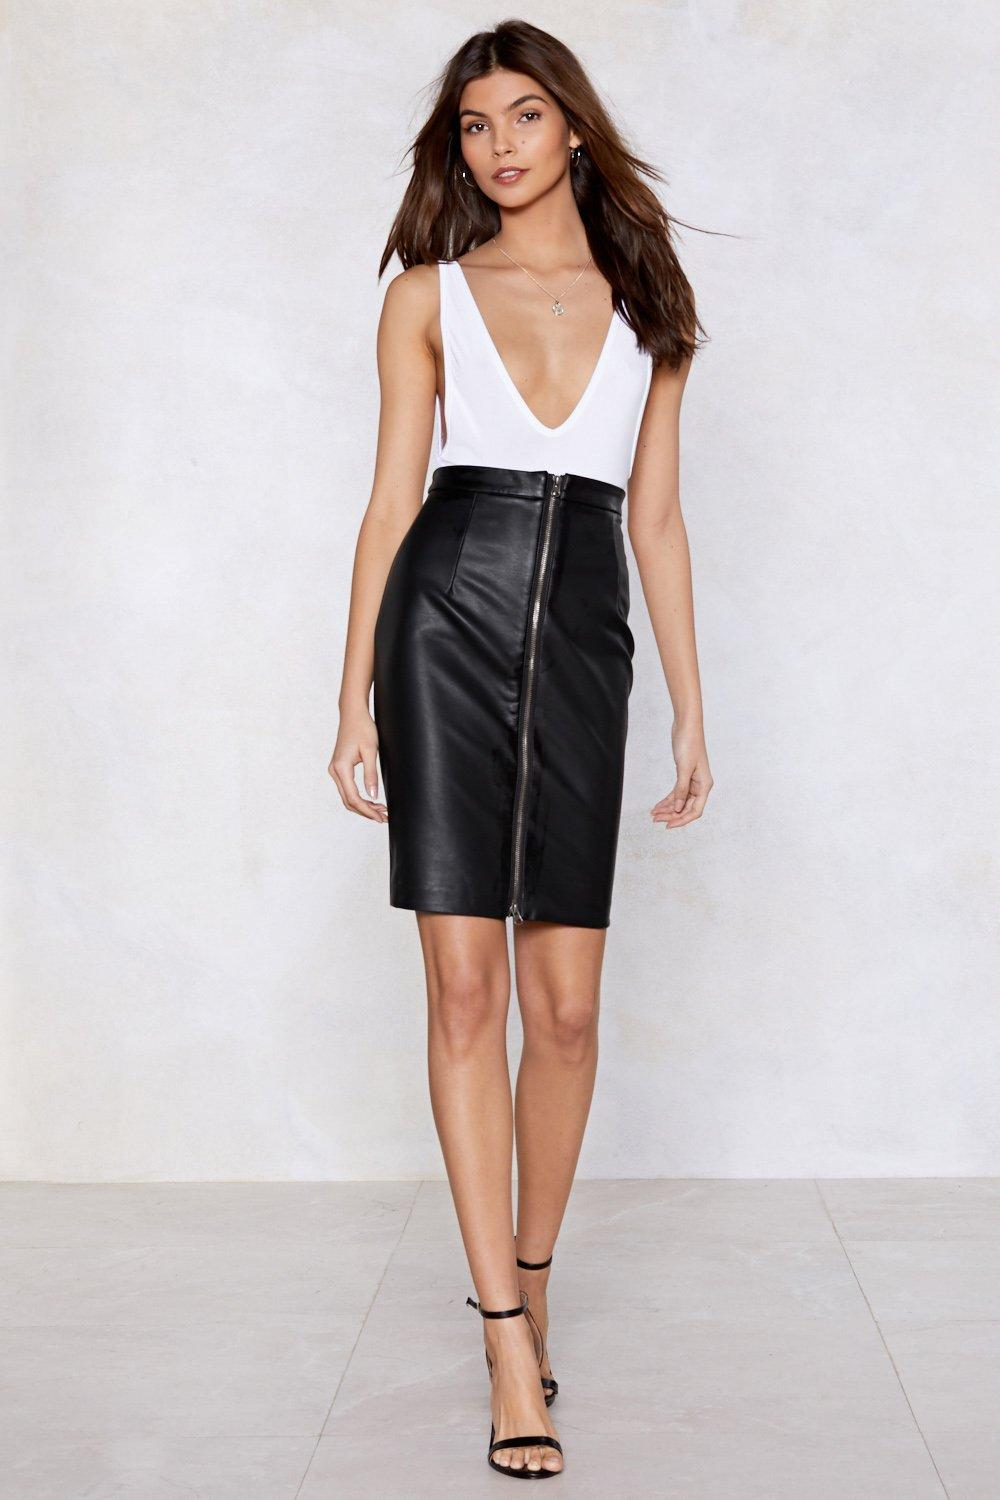 41f24caa5e It's Zip-Up to You Faux Leather Skirt | Shop Clothes at Nasty Gal!